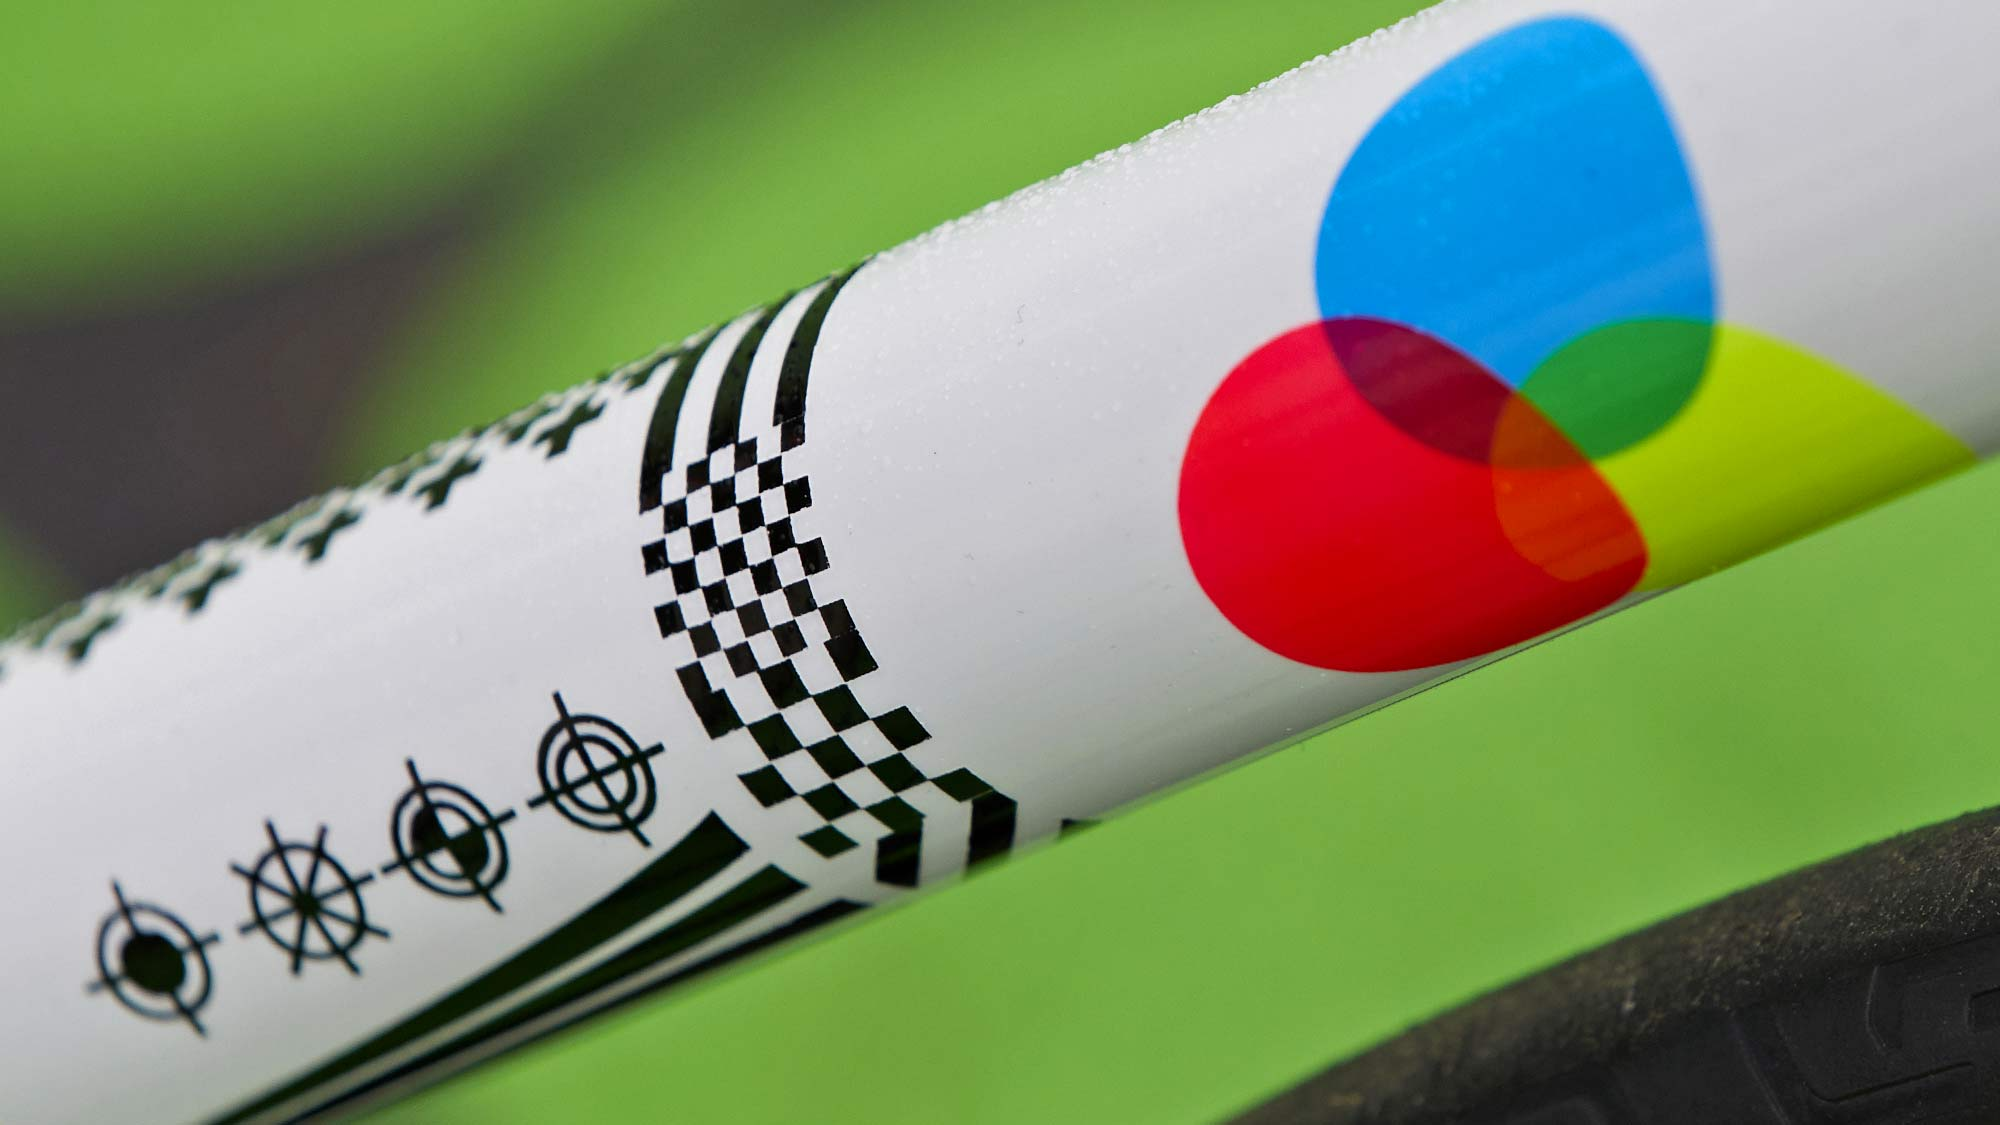 2021-2022 Speedvagen Surprise Me series, full-custom Vanilla workshop road bike with surprise paintjob inspired by printers proofs, The Painters Proof CMYK edition registration marks